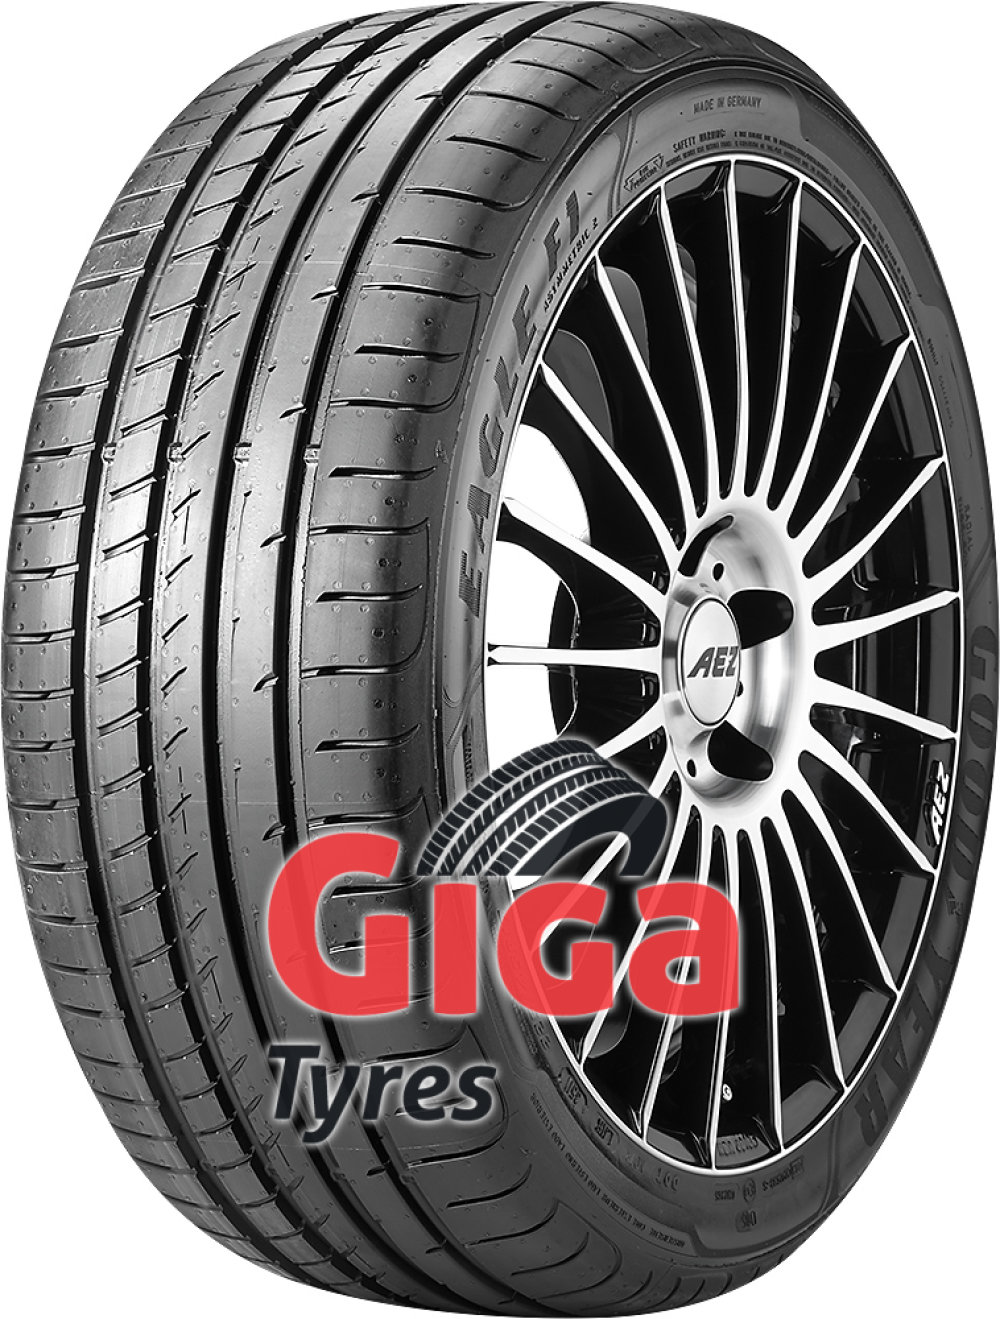 Goodyear Eagle F1 Asymmetric 2 ( 245/50 ZR18 (100Y) N0, with rim protection (MFS) )